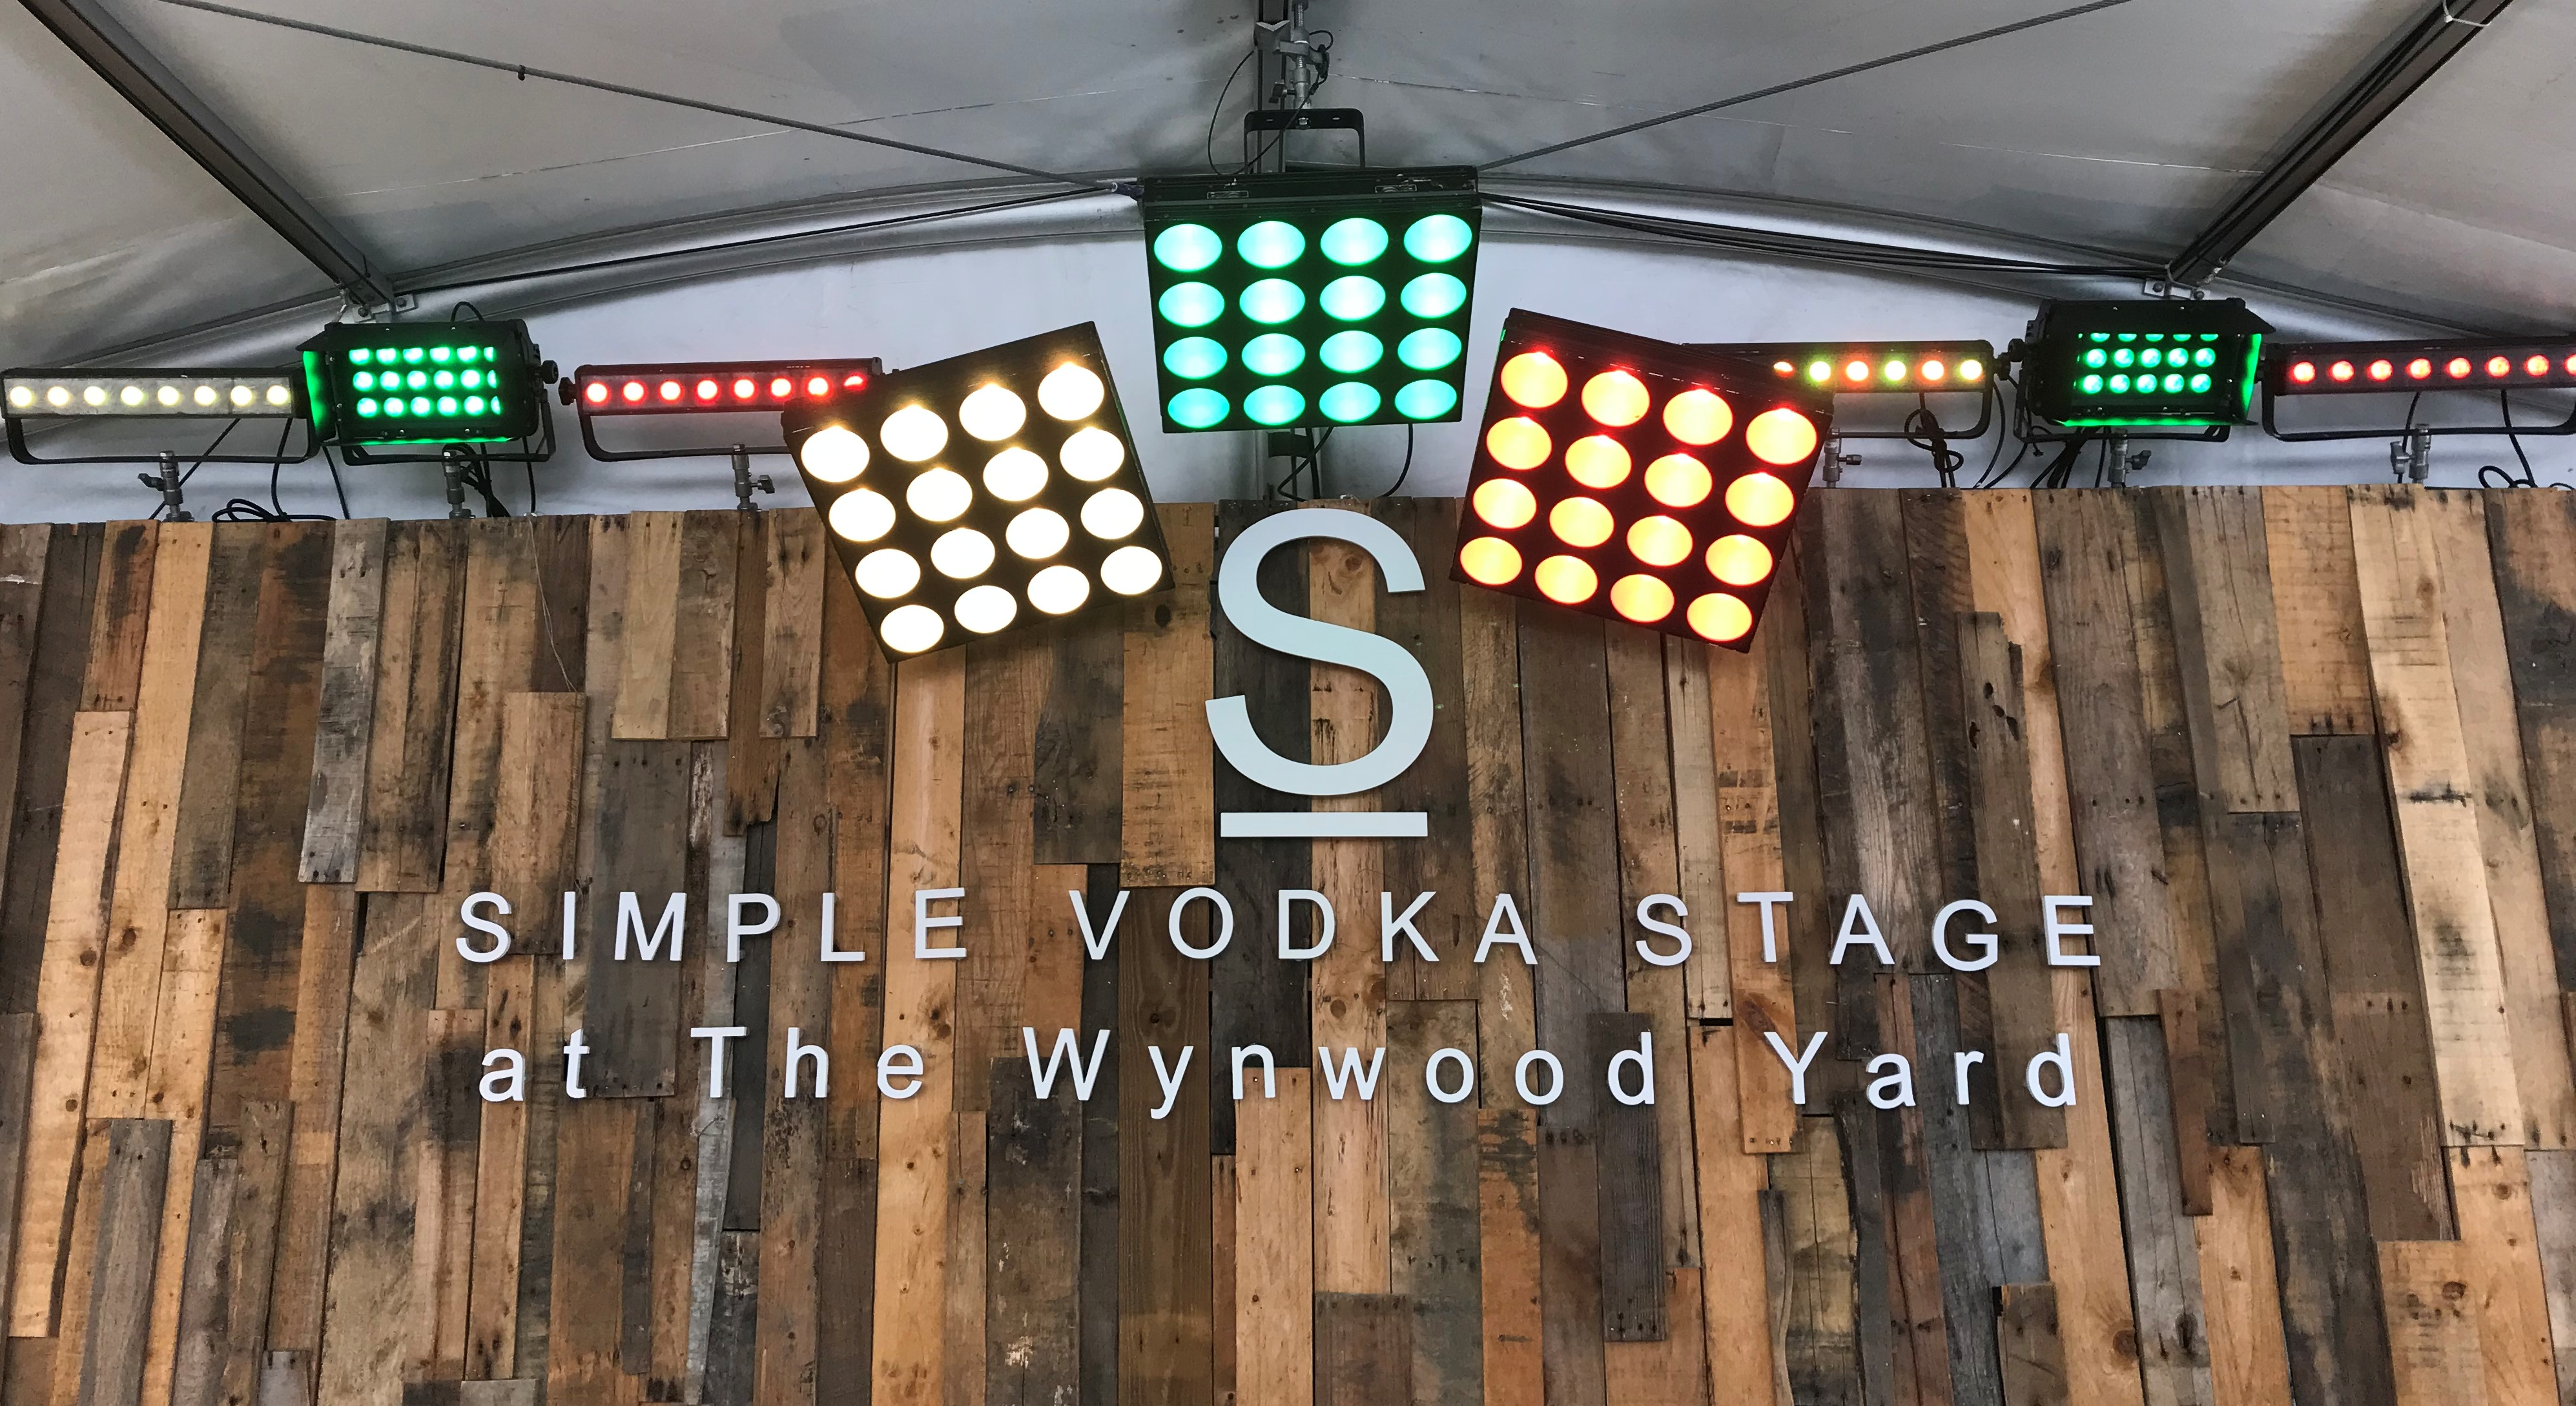 Lighting, corporate branding, with Simple Vodka at The Wynwood Yard, Miami, FL